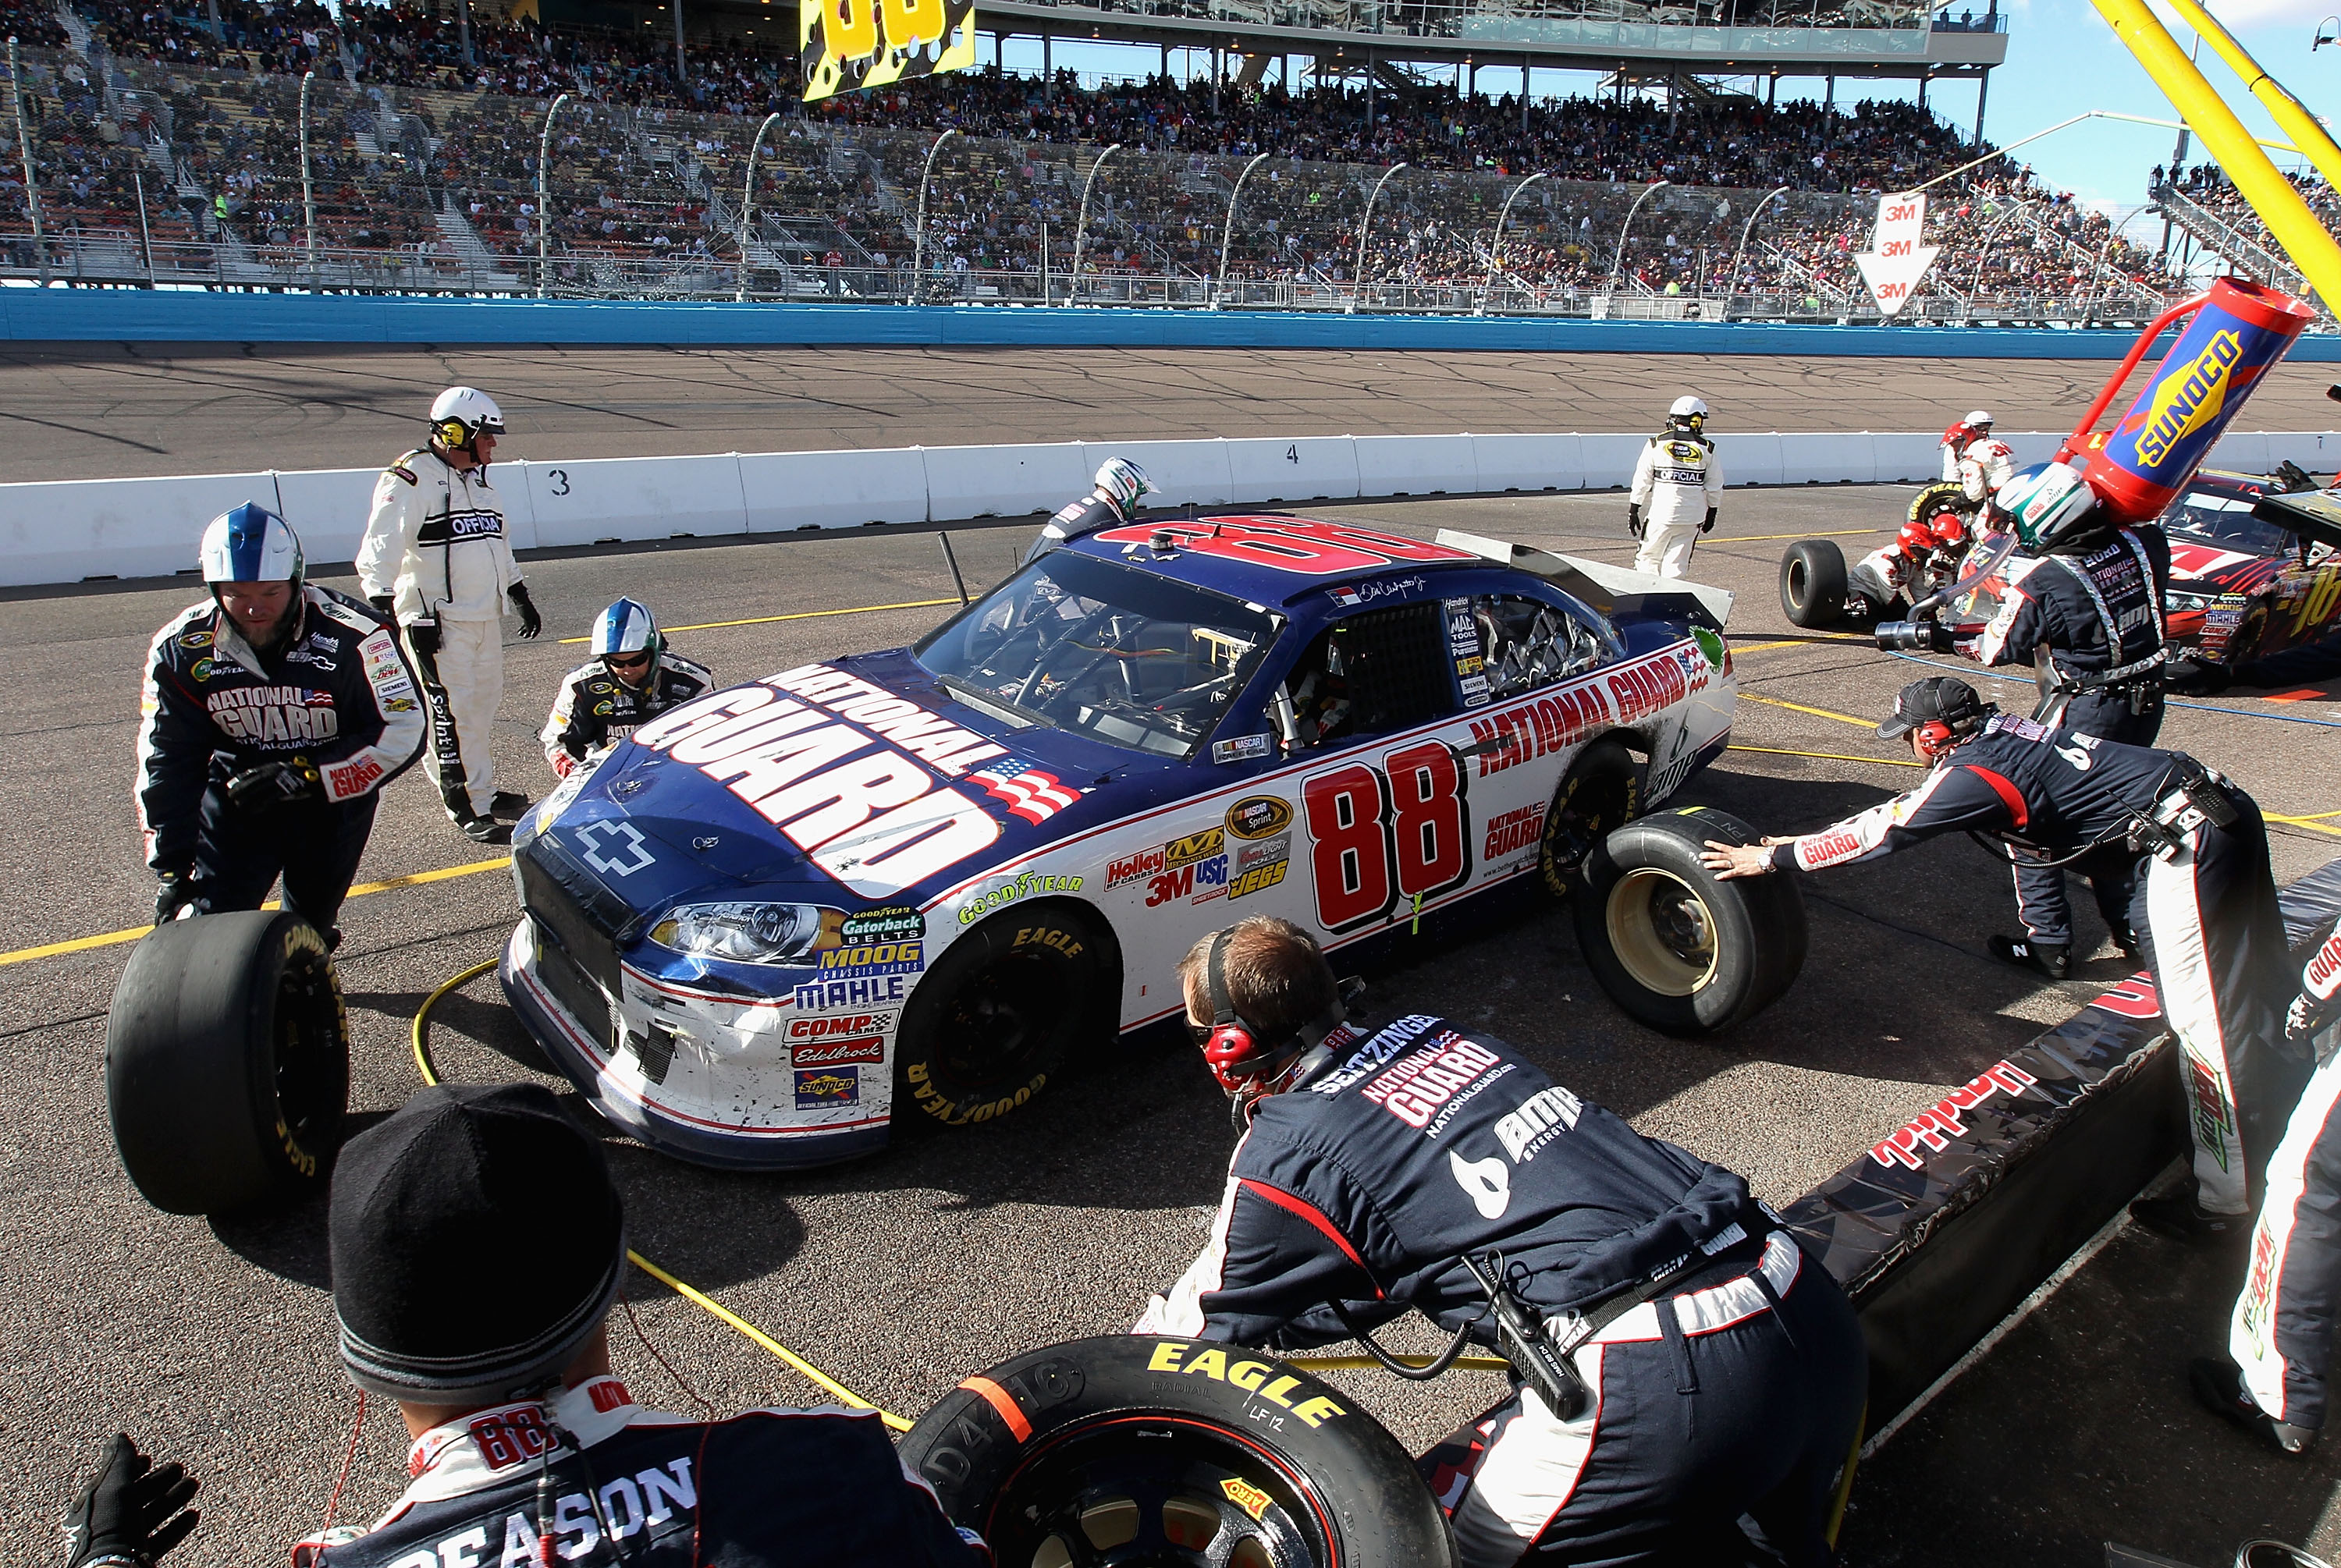 AVONDALE, AZ - FEBRUARY 27:  Dale Earnhardt Jr., driver of the #88 National Guard/AMP Energy Chevrolet, makes a pit stop during the NASCAR Sprint Cup Series Subway Fresh Fit 500 at Phoenix International Raceway on February 27, 2011 in Avondale, Arizona.